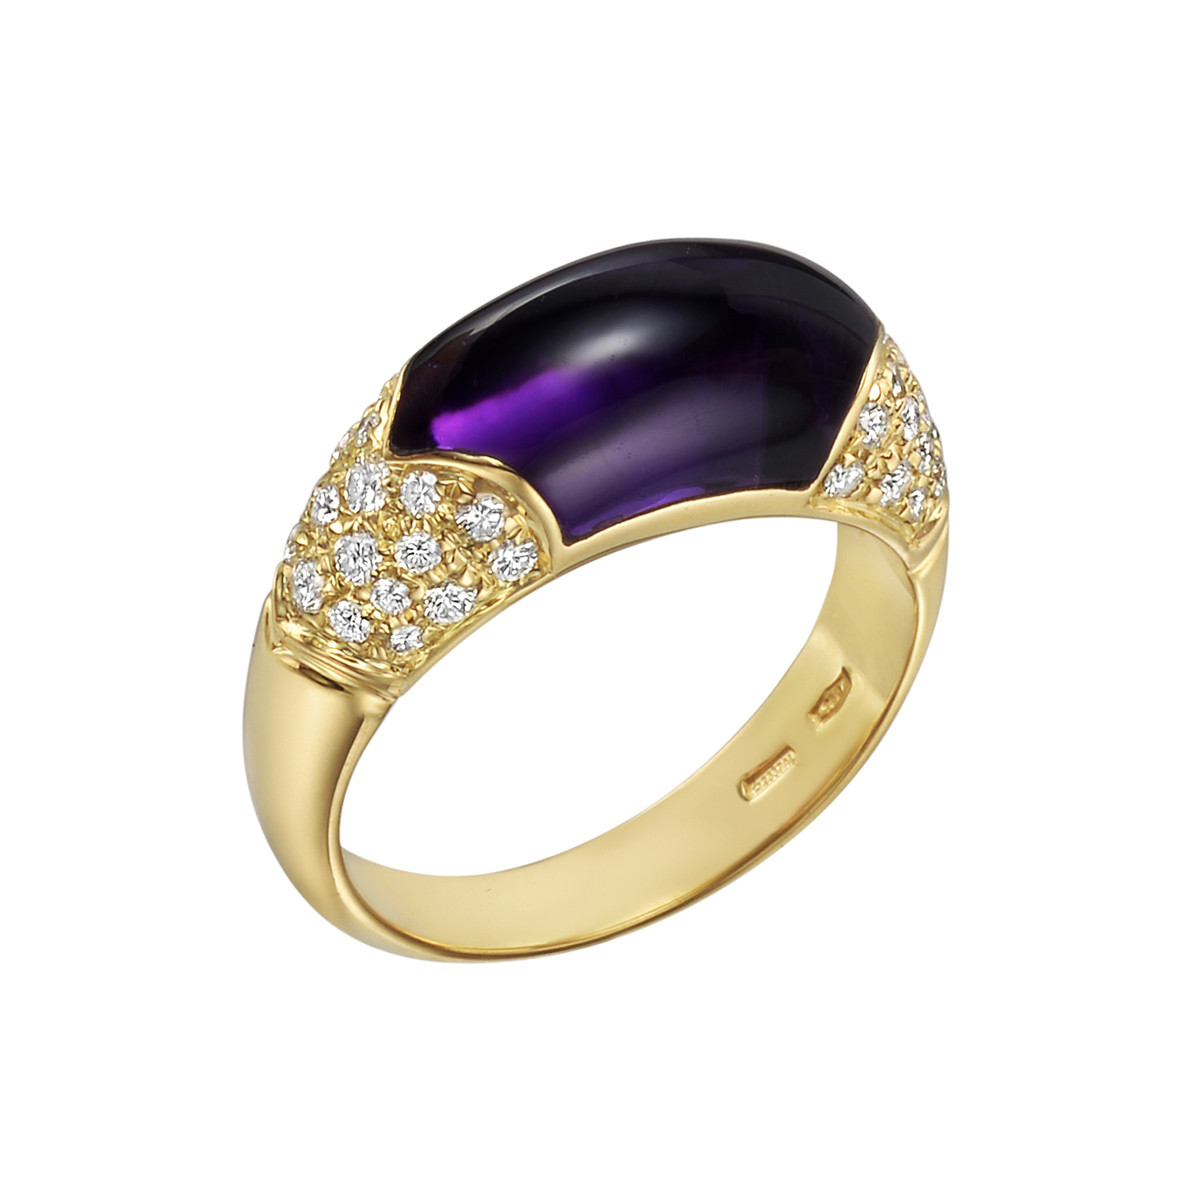 18k Yellow Gold, Amethyst & Diamond Ring